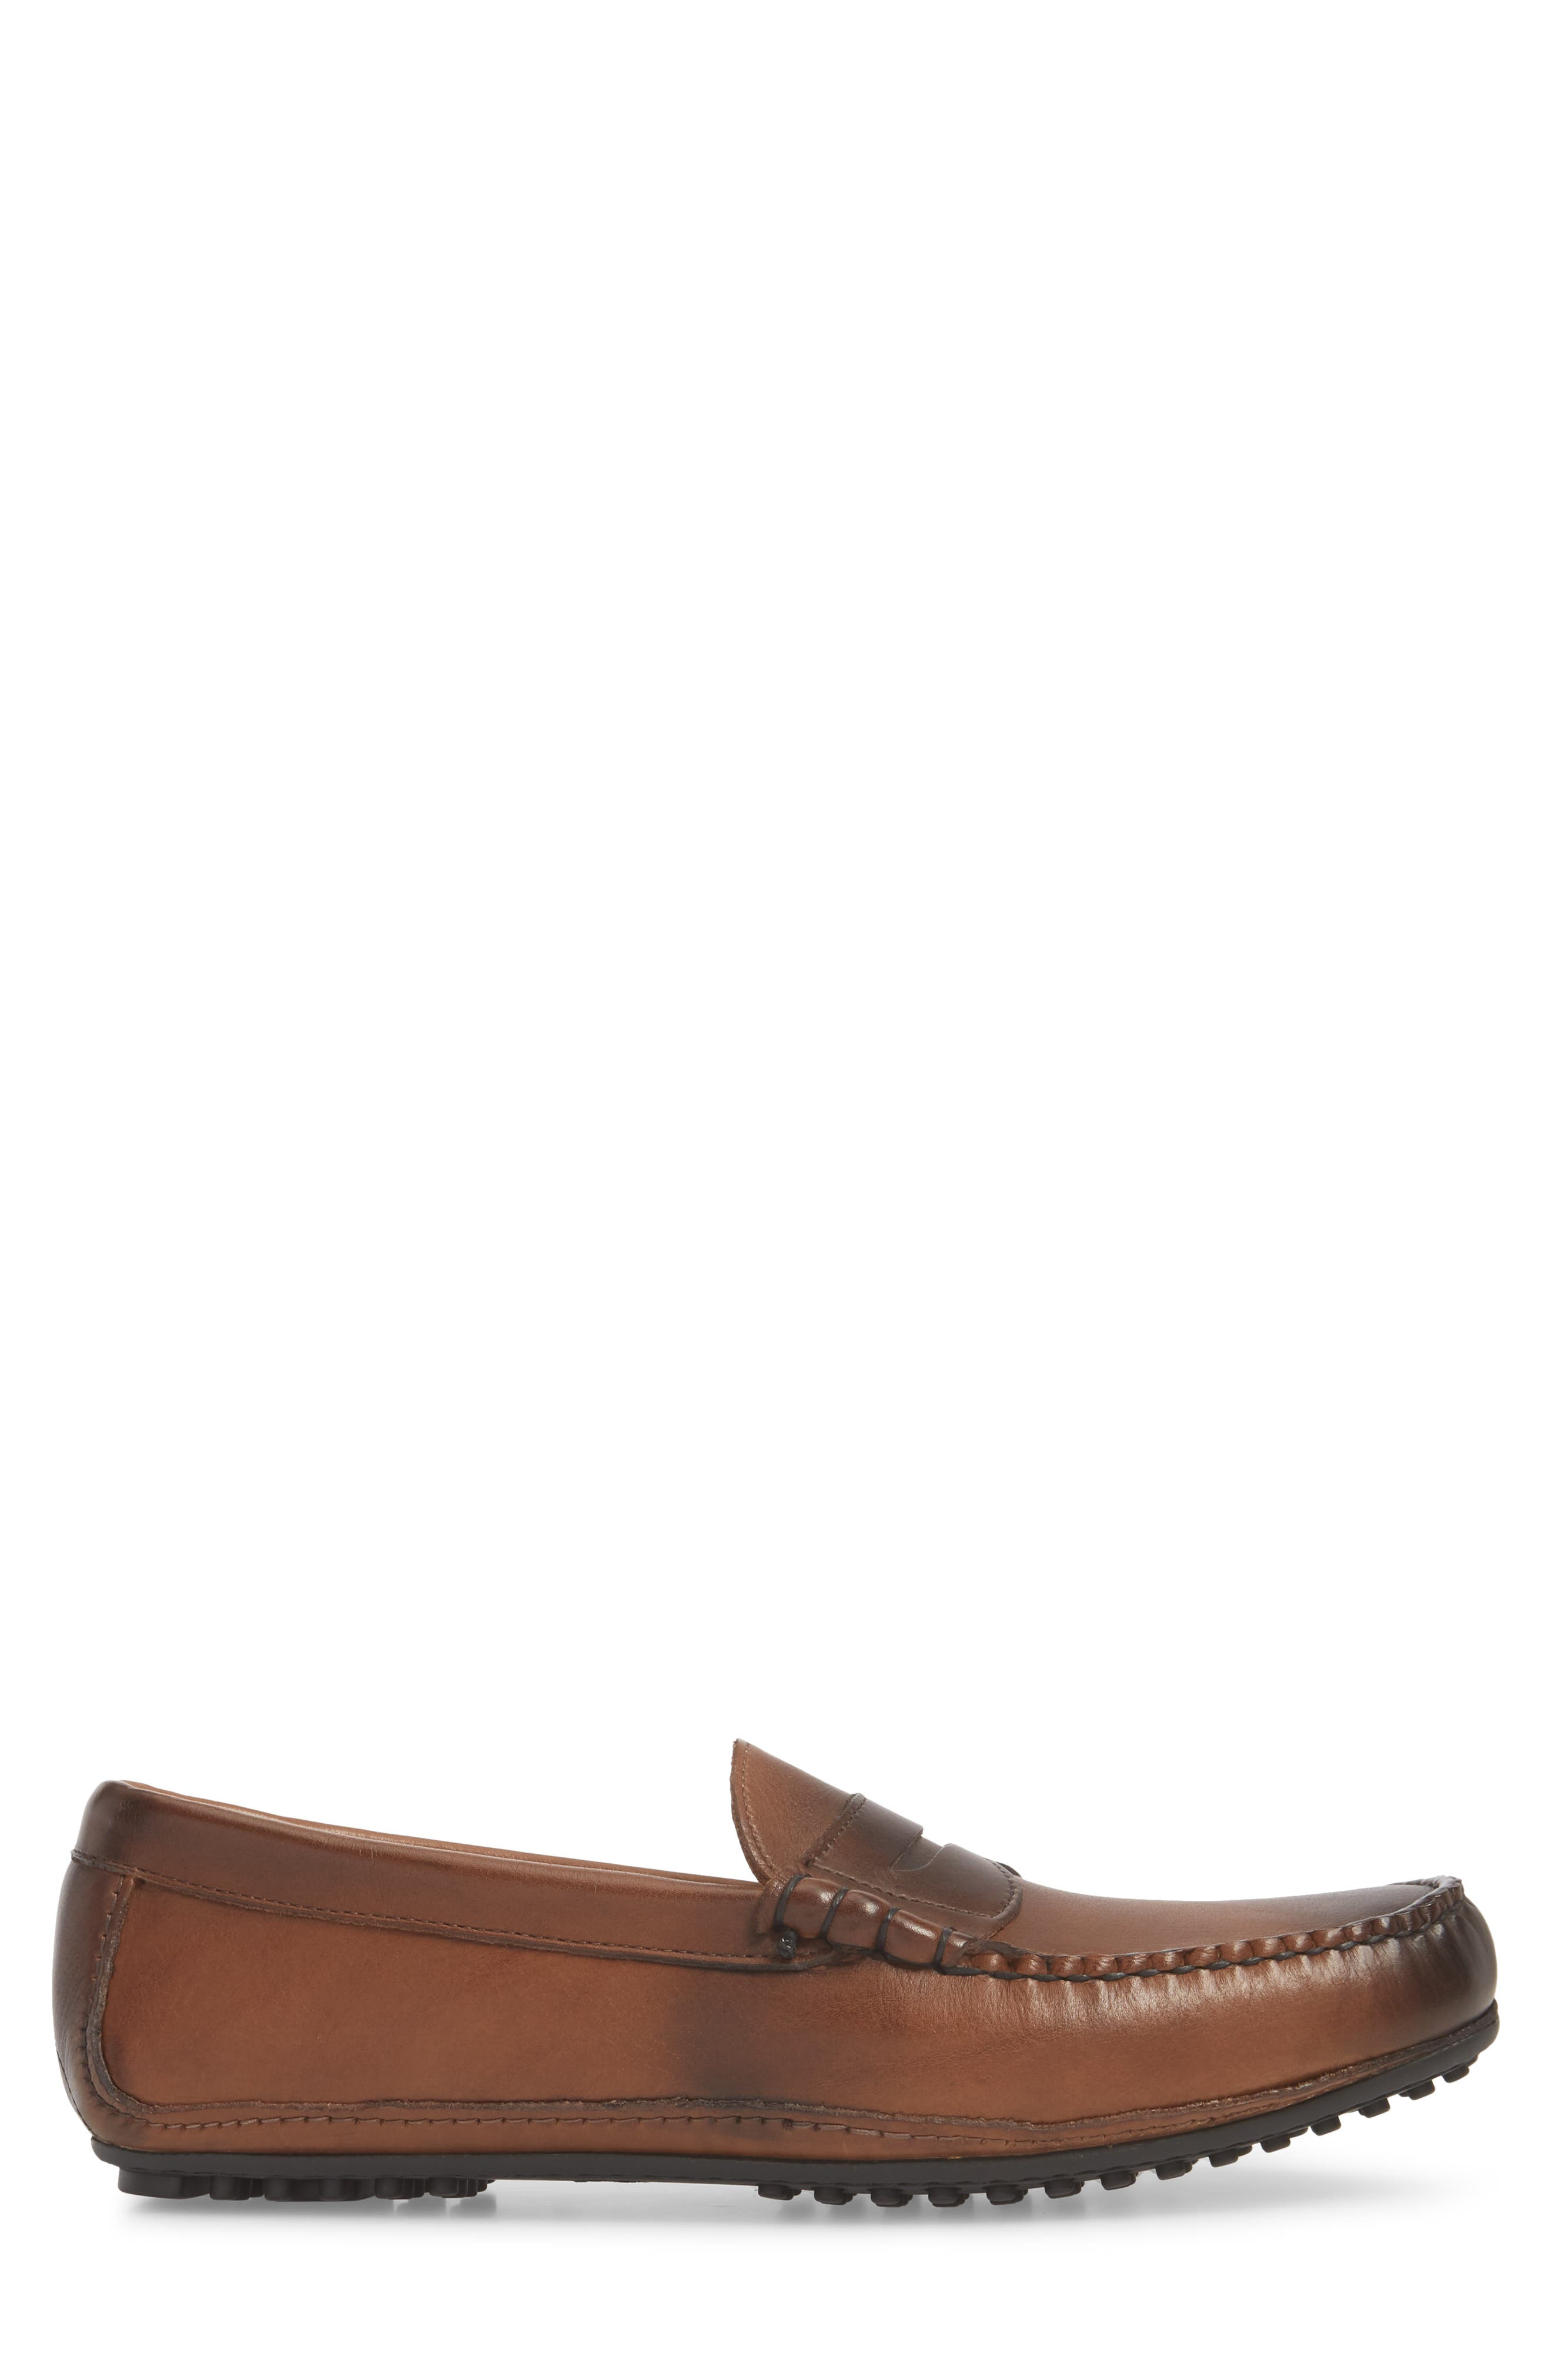 Siesta Key Penny Loafer,                             Alternate thumbnail 3, color,                             Brown Leather